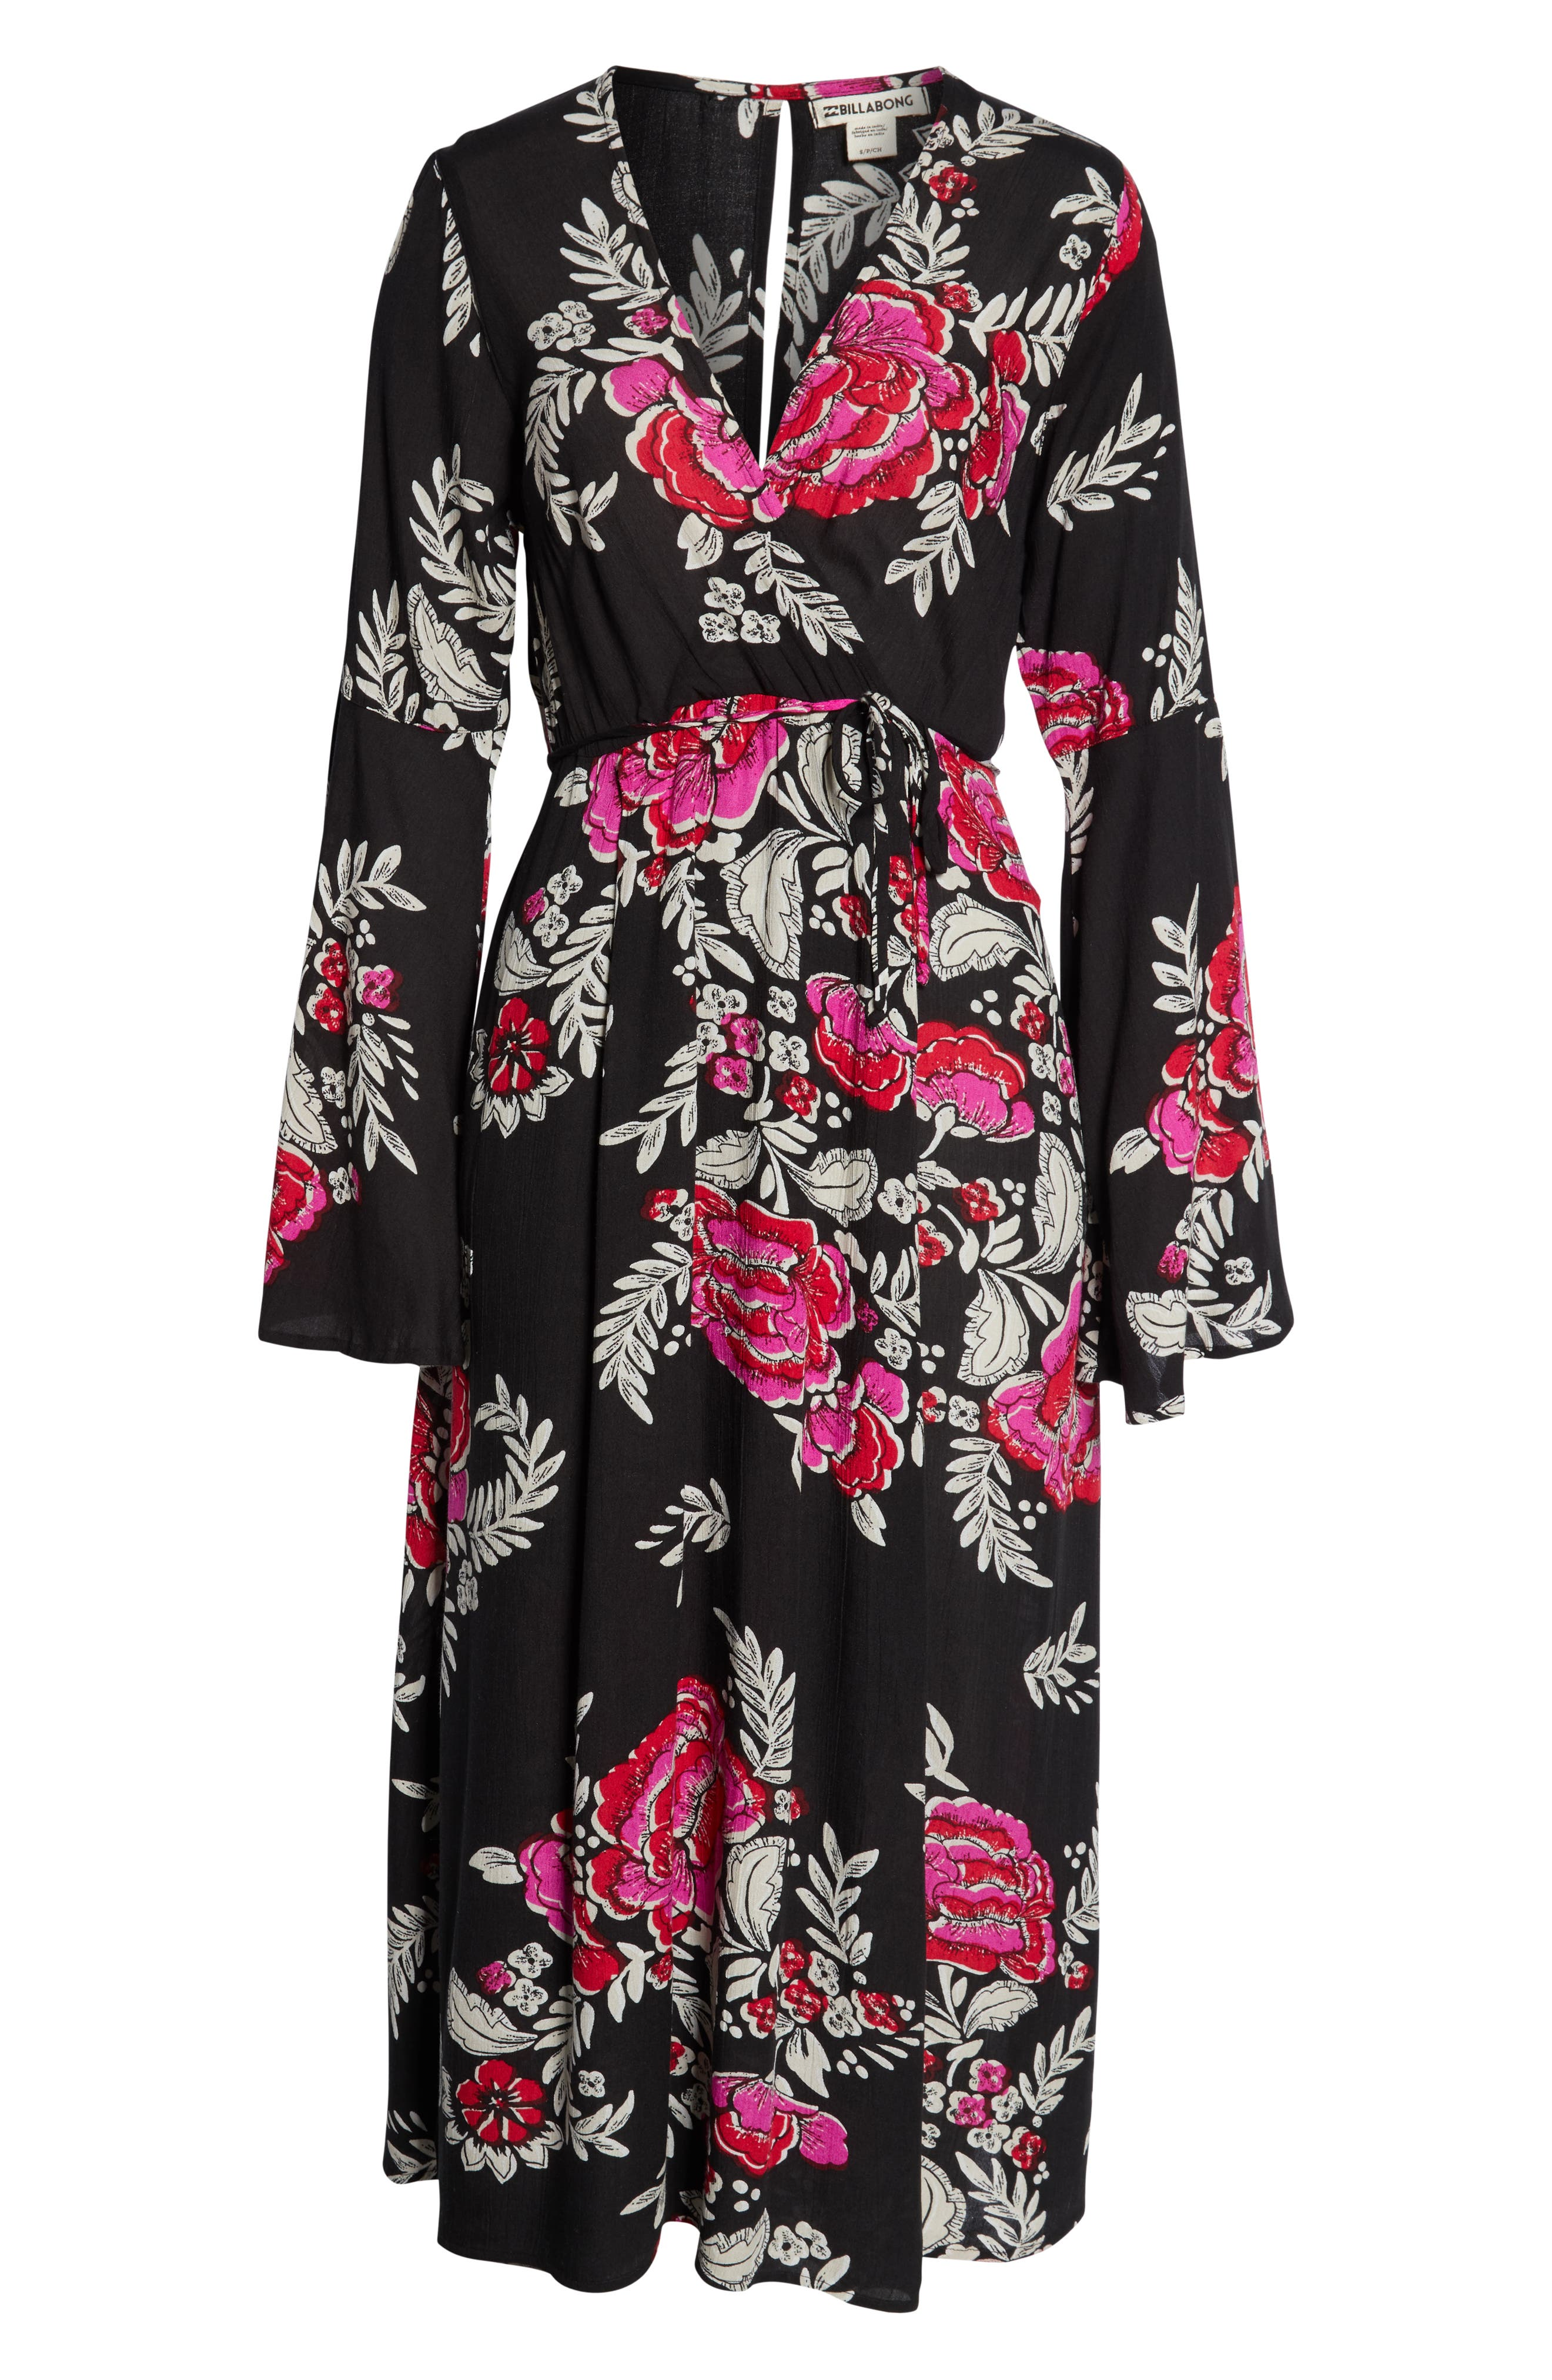 Floral Whispers Floral Midi Dress,                             Alternate thumbnail 3, color,                             001